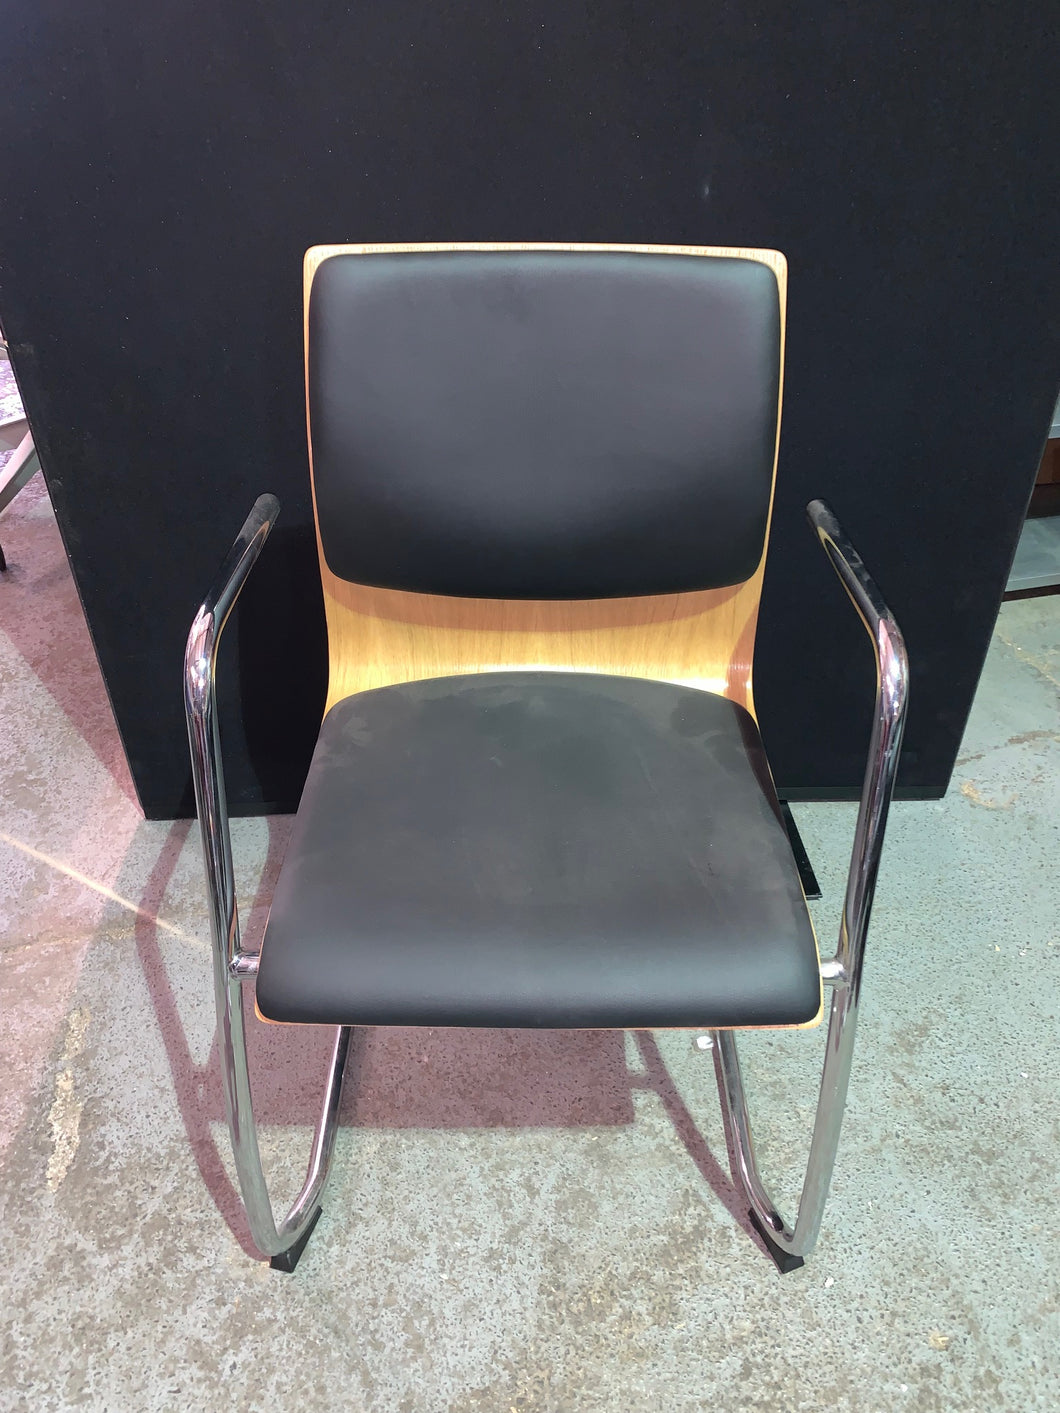 Faux Leather Meeting/Reception Chair - Flogit2us.com